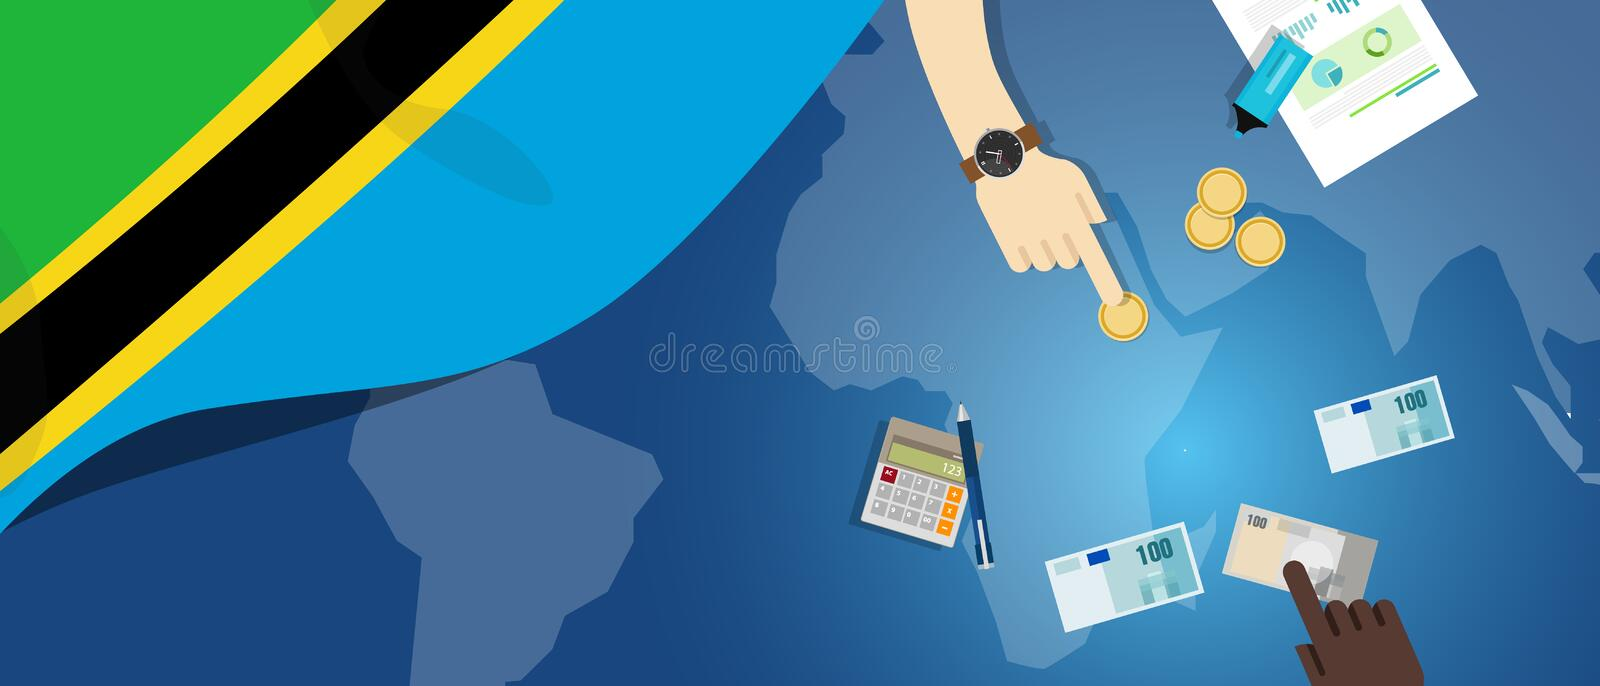 Tanzania economy fiscal money trade concept illustration of financial banking budget with flag map and currency. Vector stock illustration